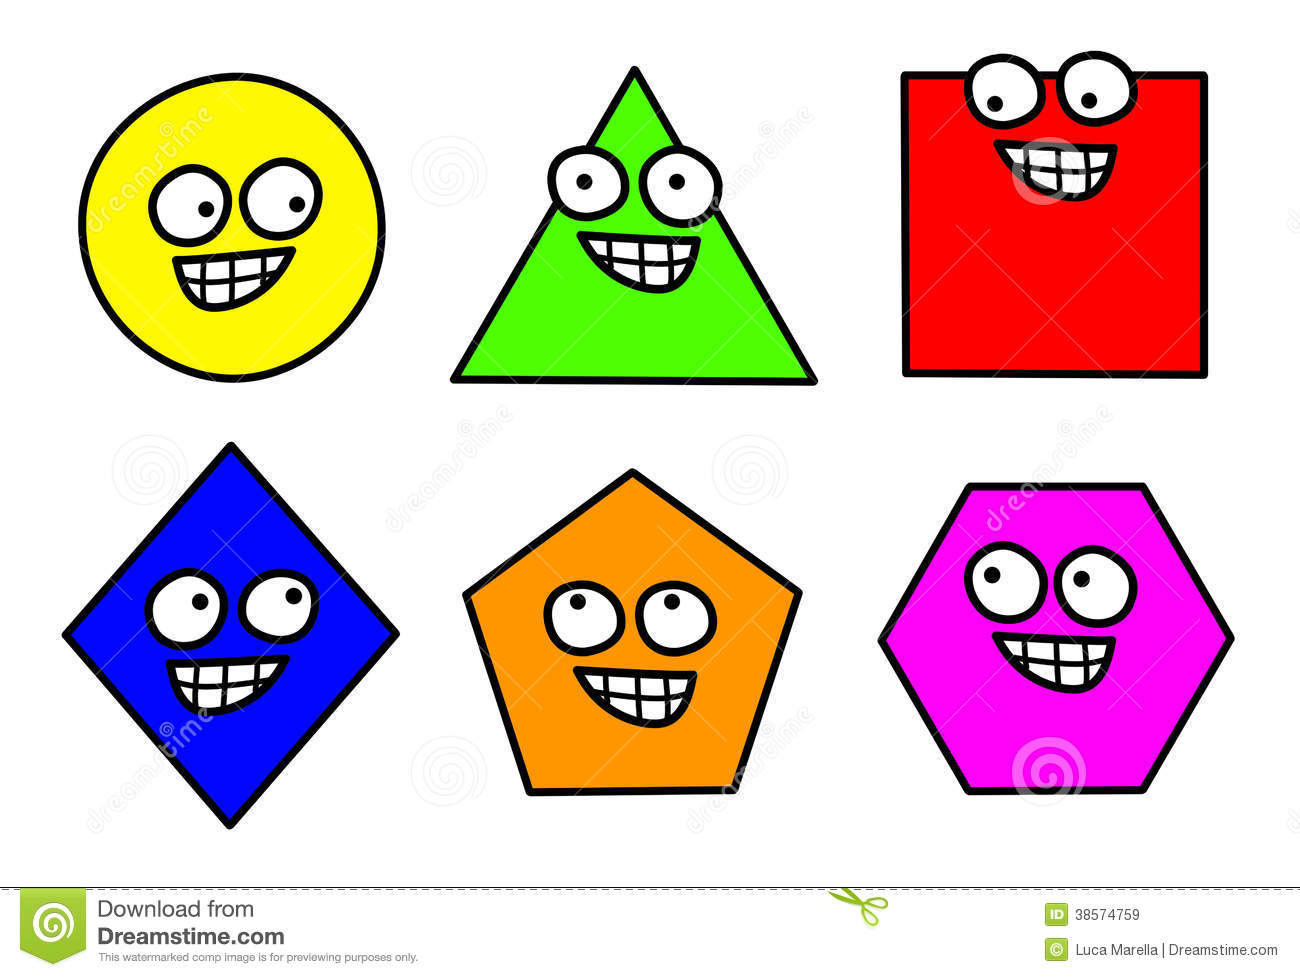 Cartoon Characters Using Shapes : Geometry shapes clipart stock illustration